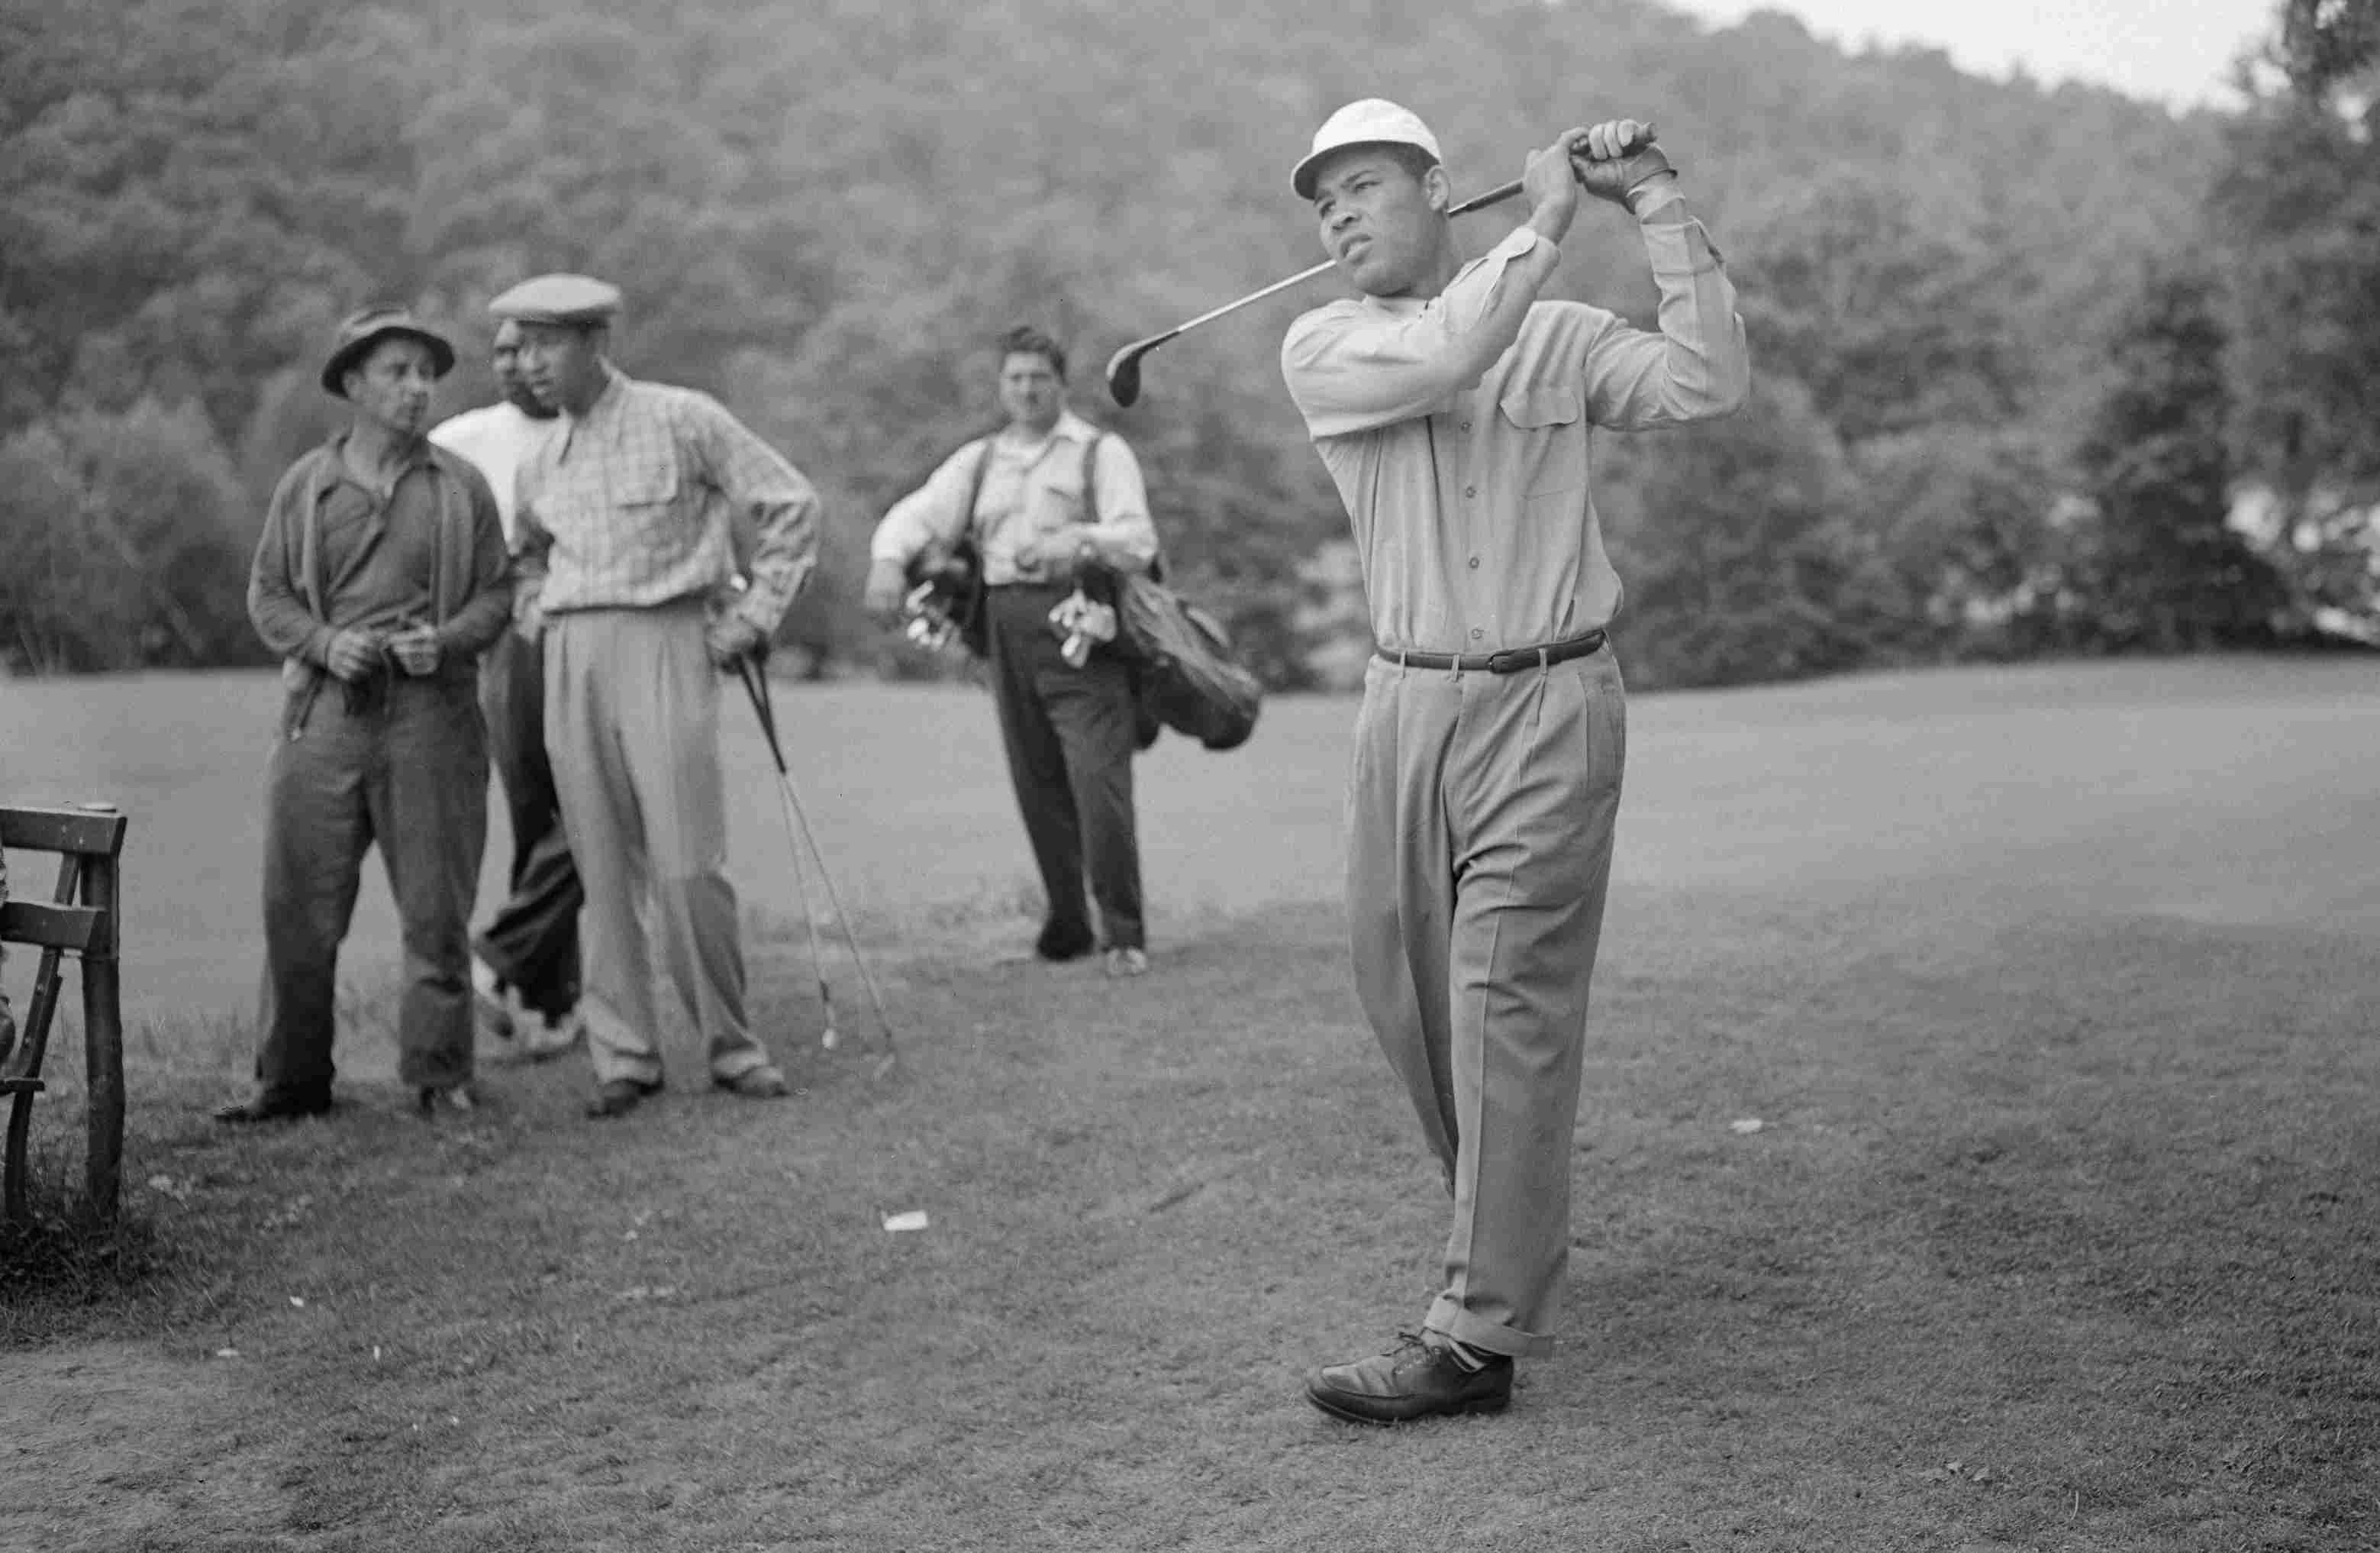 Boxing legend Joe Louis tees off at a golf course in Yonkers, N.Y., in 1946.